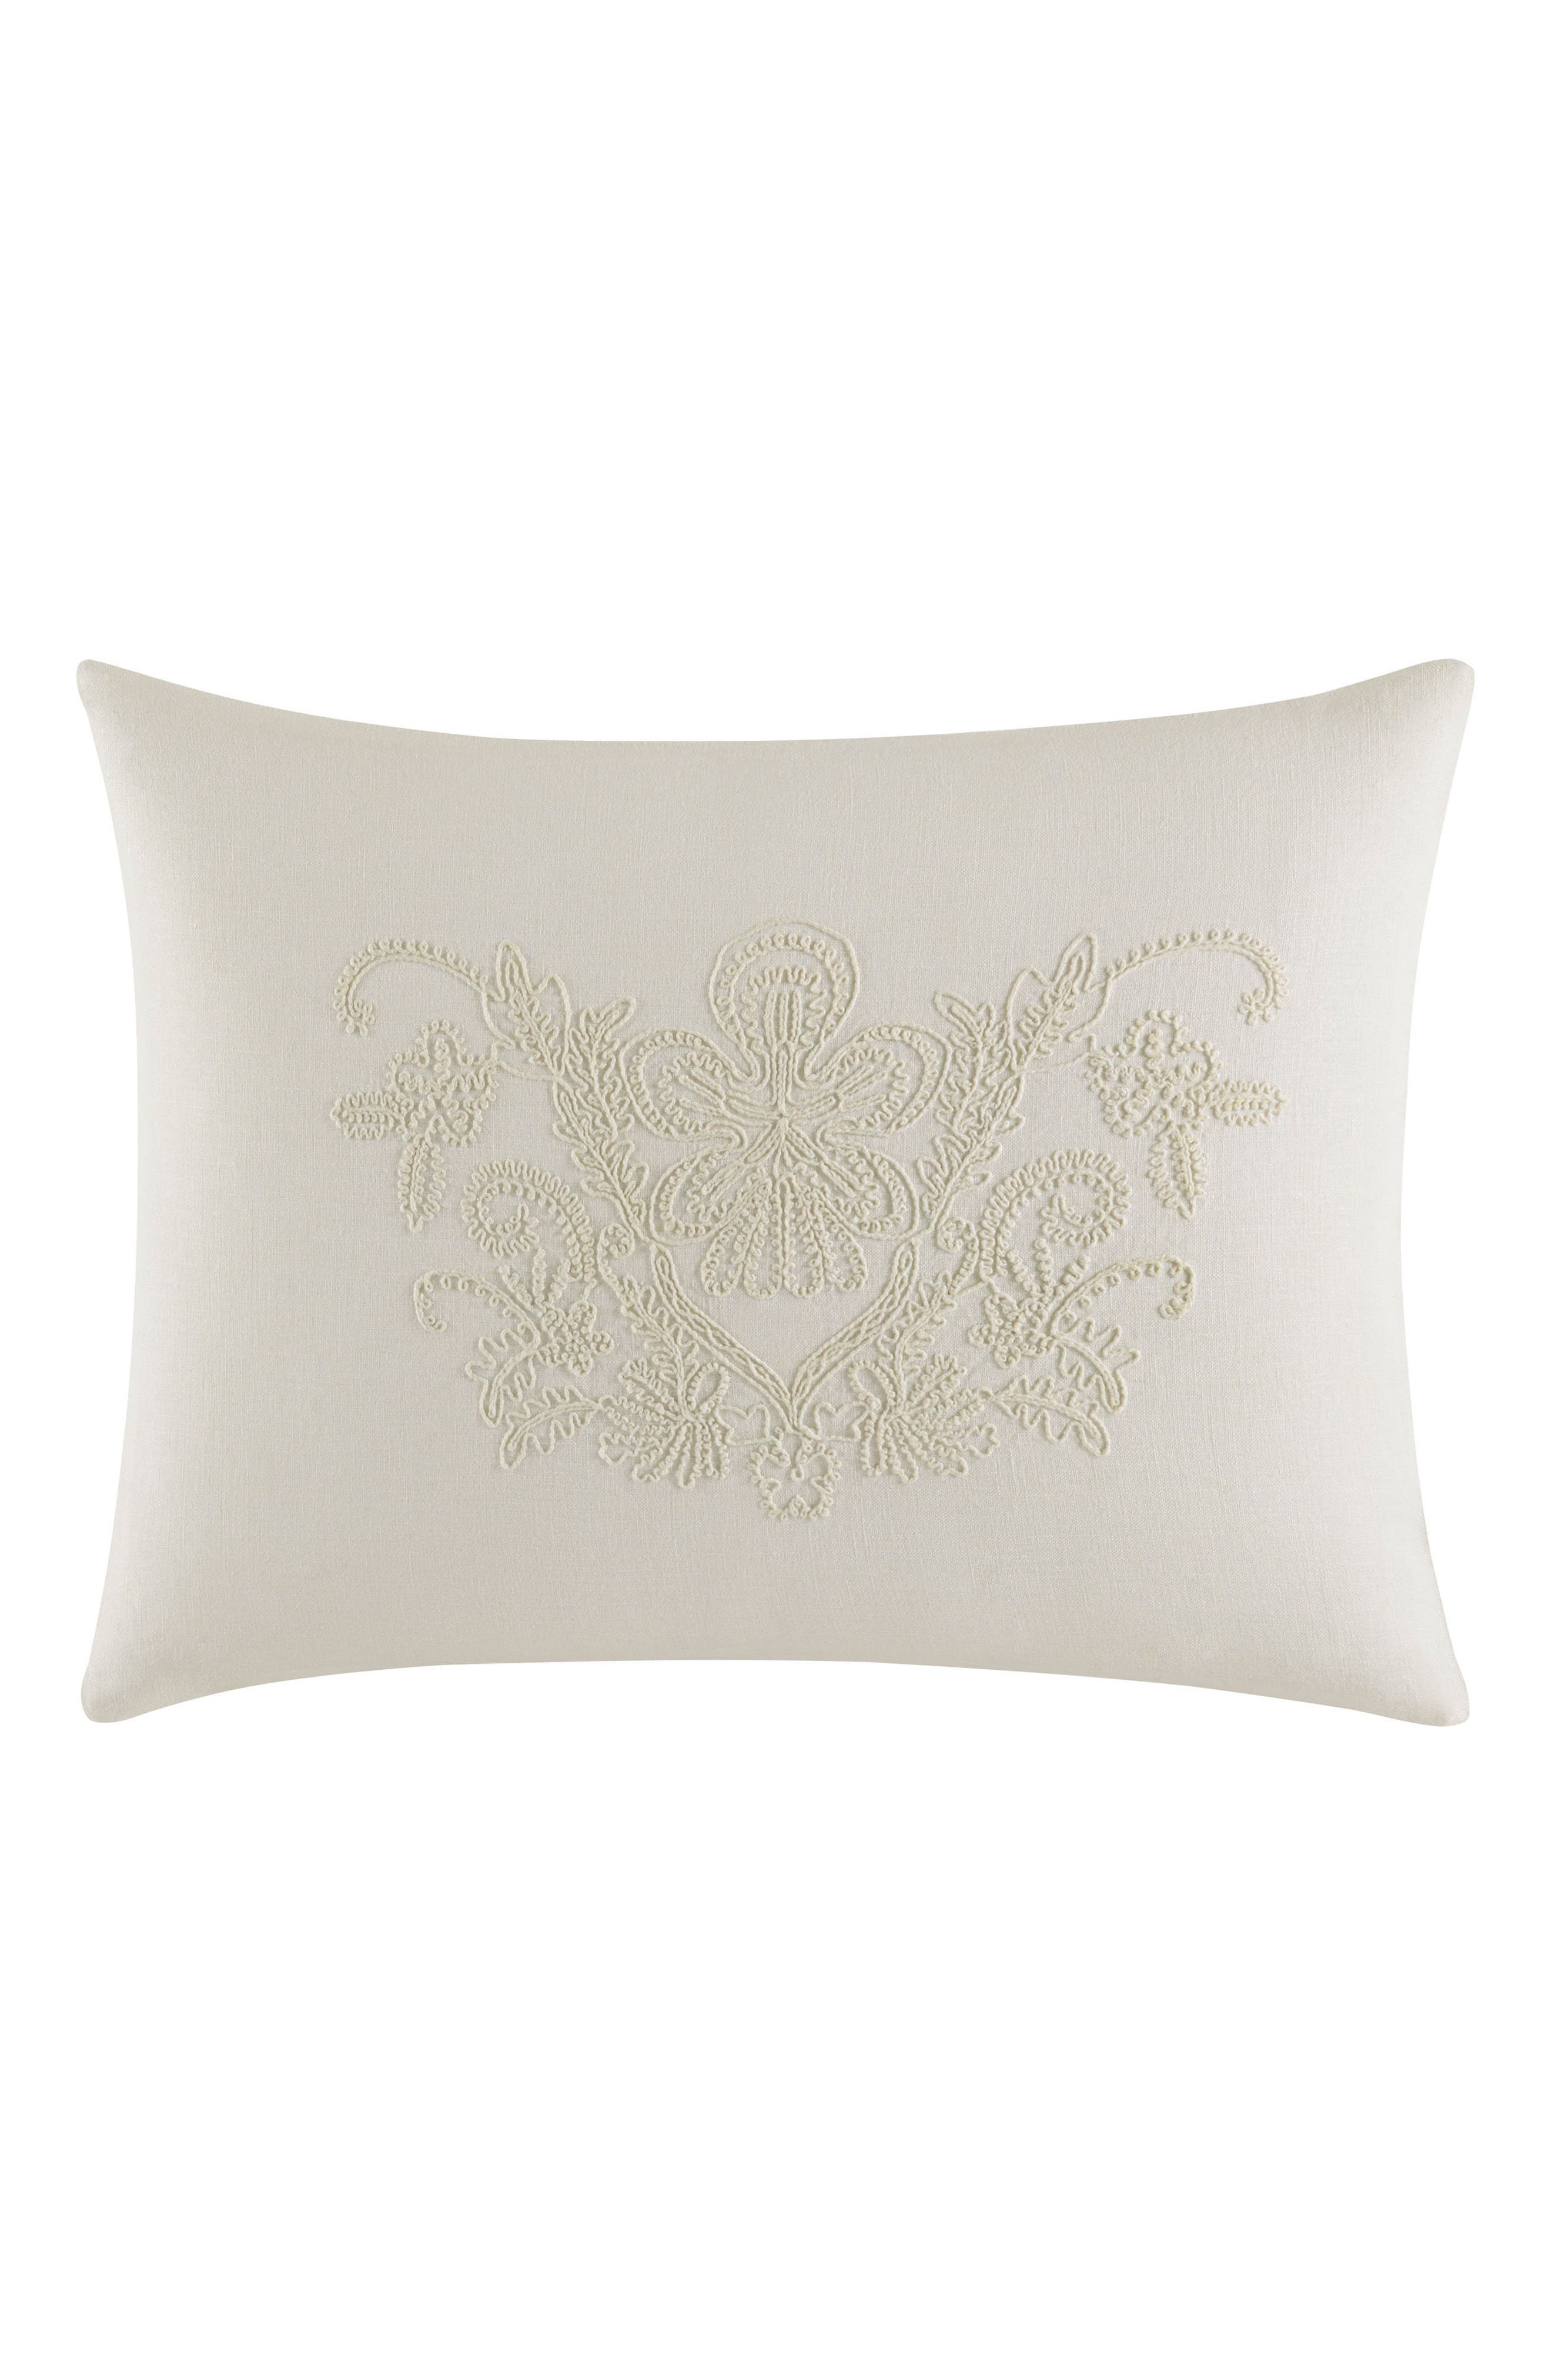 Main Image - Vera Wang Passementerie Breakfast Linen Accent Pillow